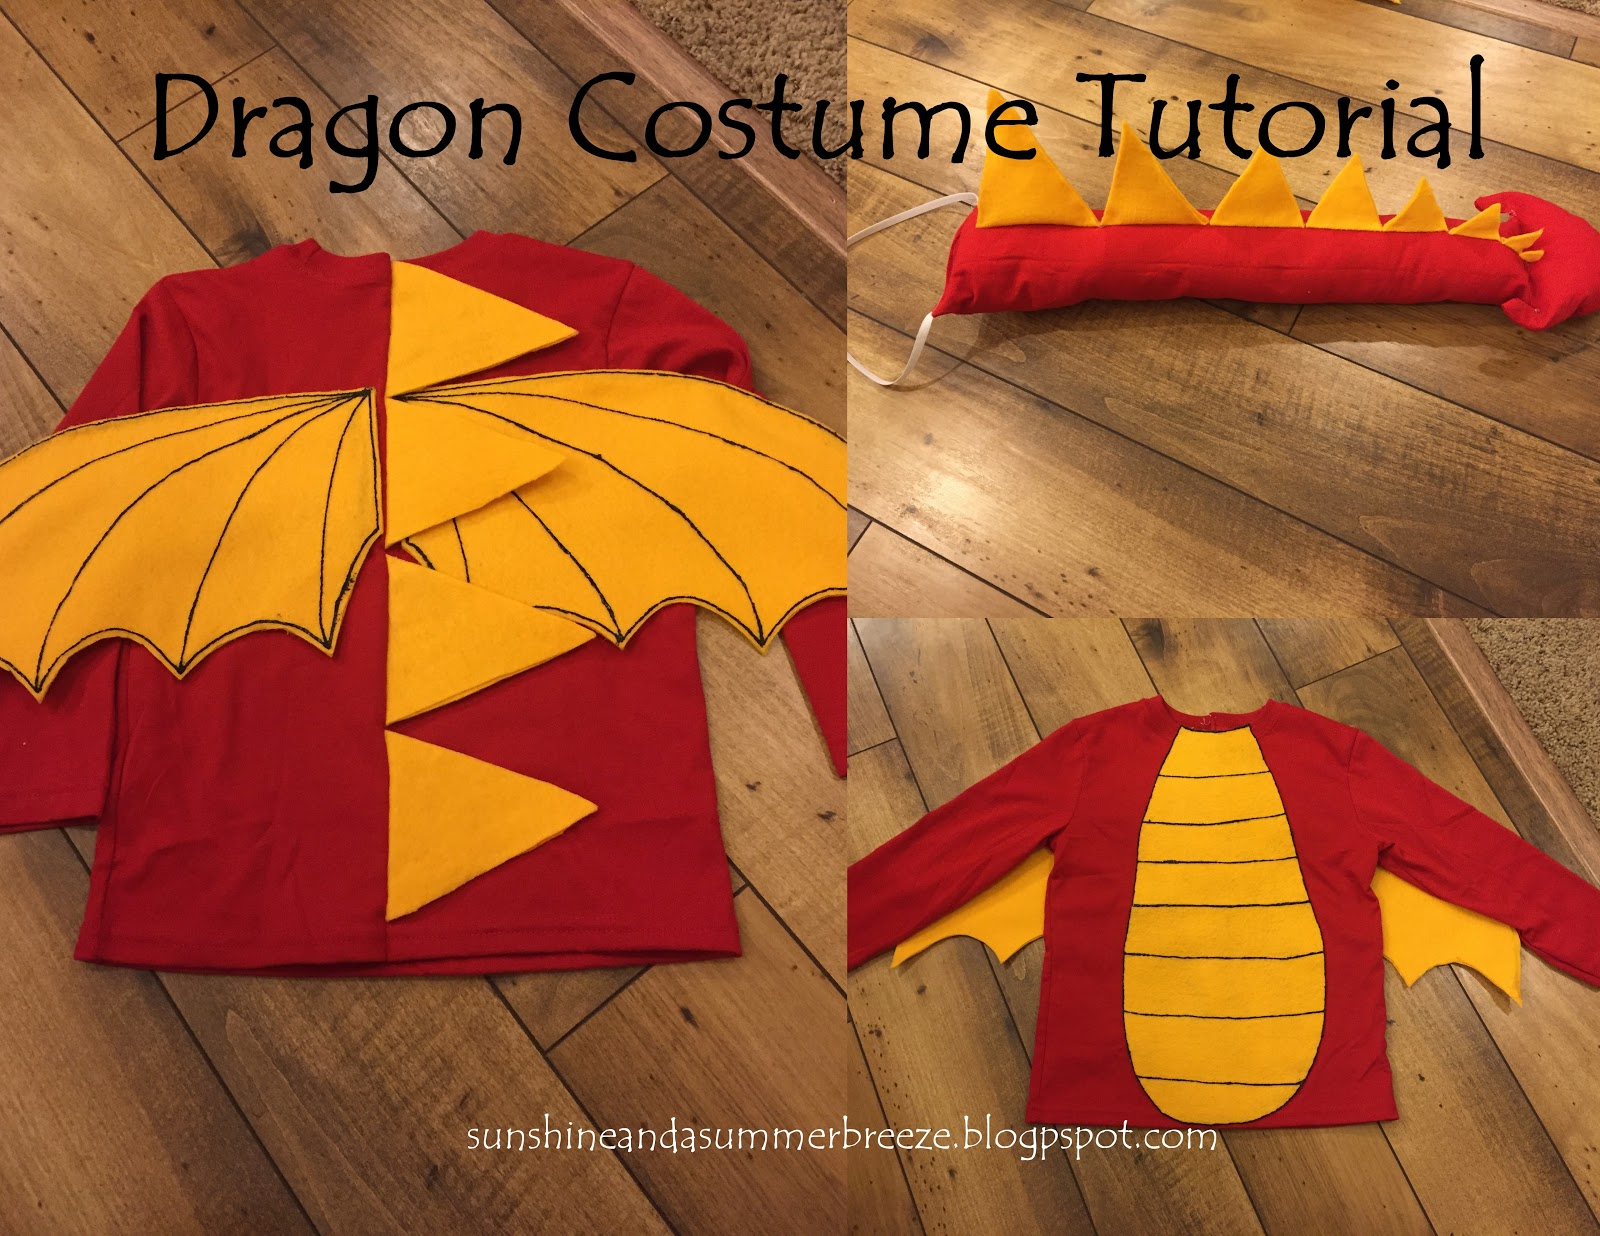 Sunshine and a summer breeze dragon costume tutorial he chose to be a dragon there like the spider costume from last year i didnt want to spend a lot of money so i went a diy route with it solutioingenieria Images